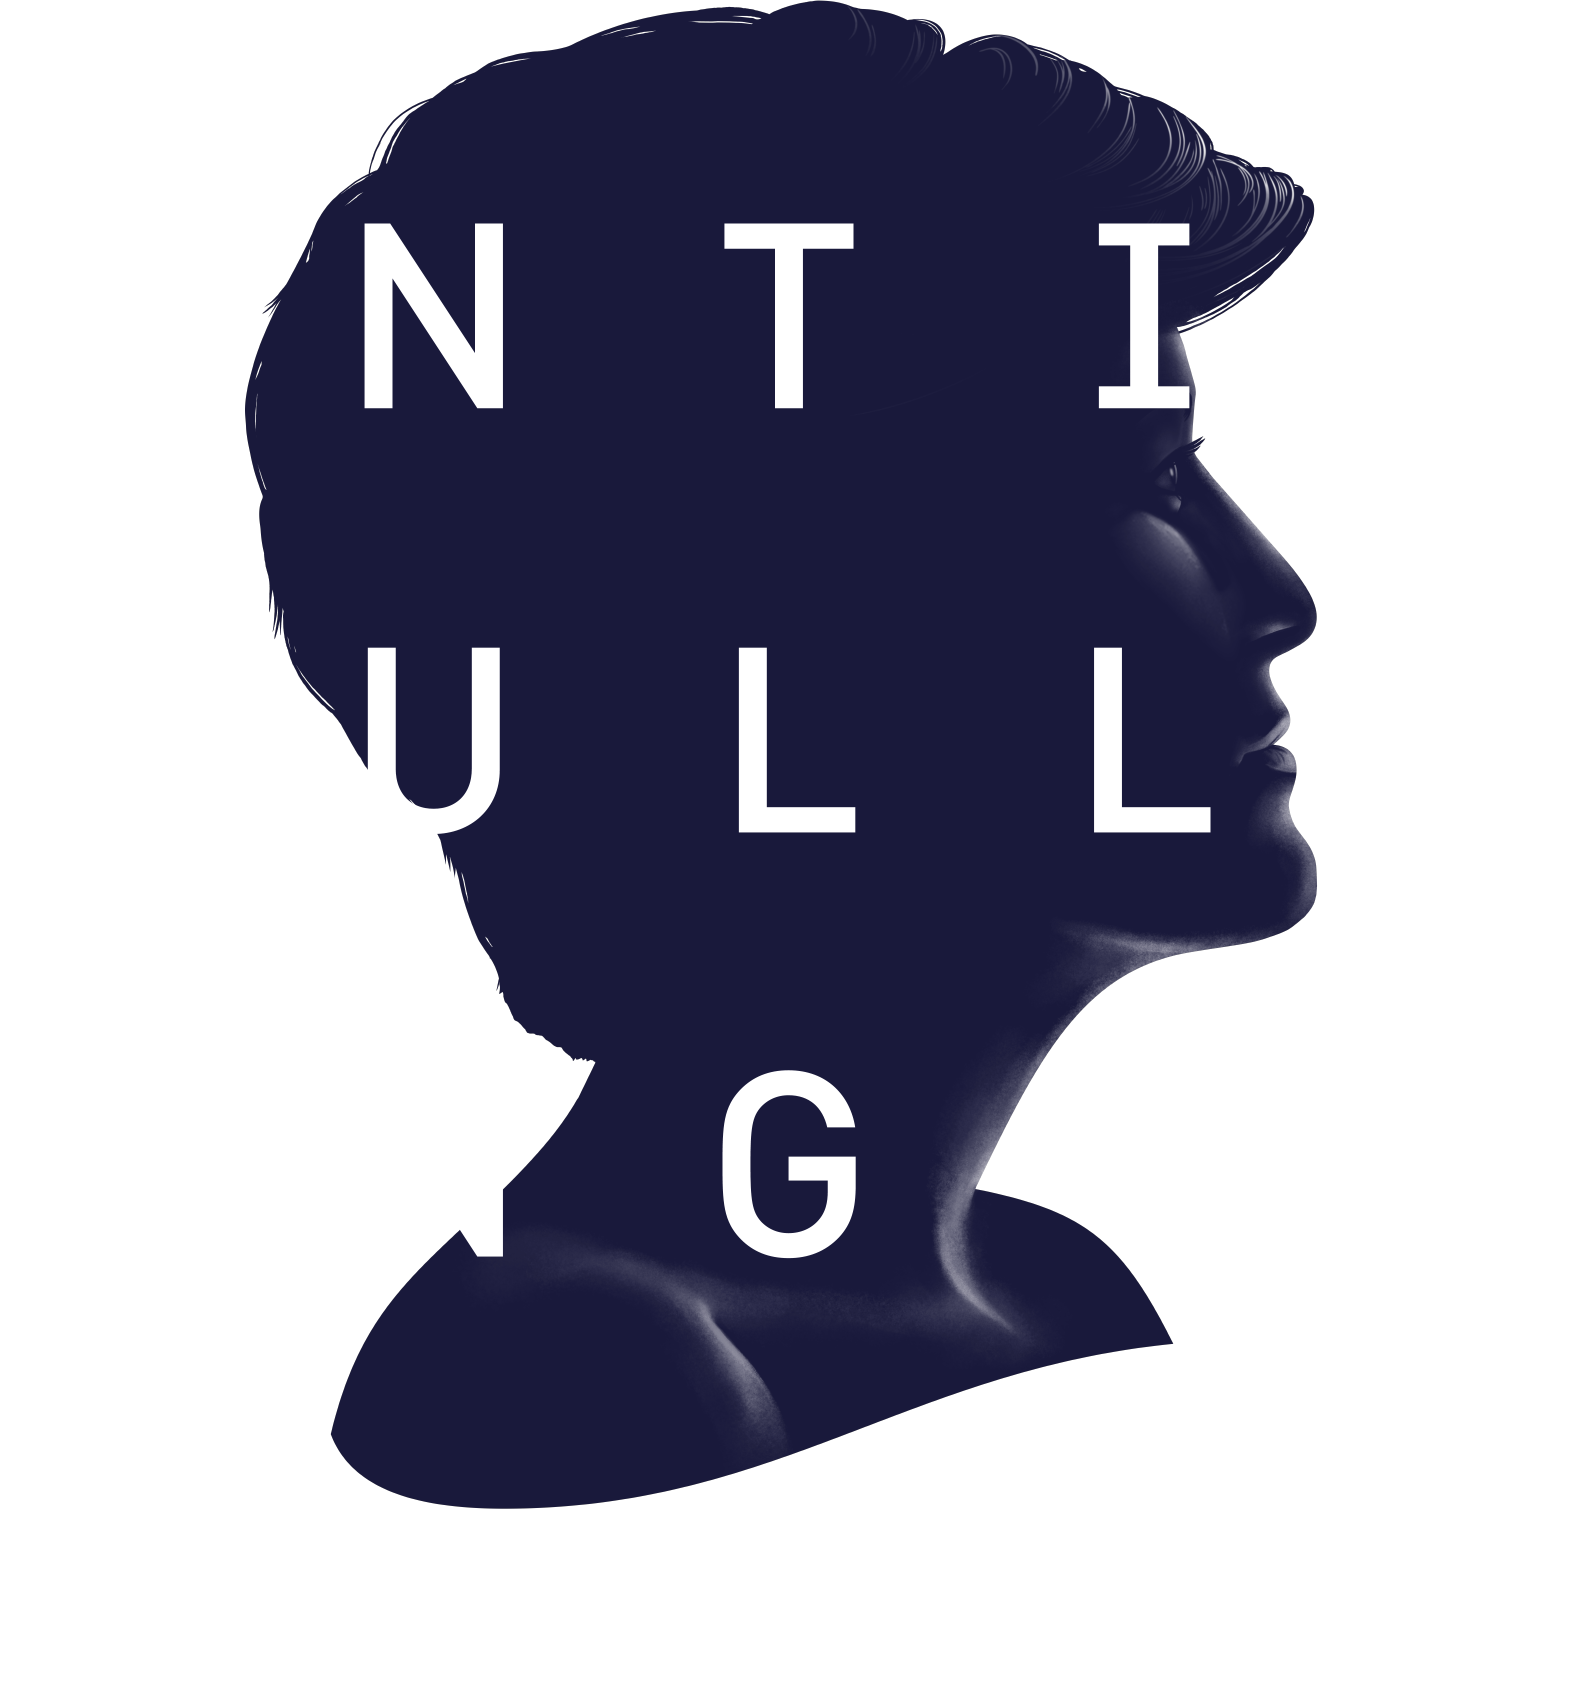 Anti-Bullying Campaign - From The Diana Award